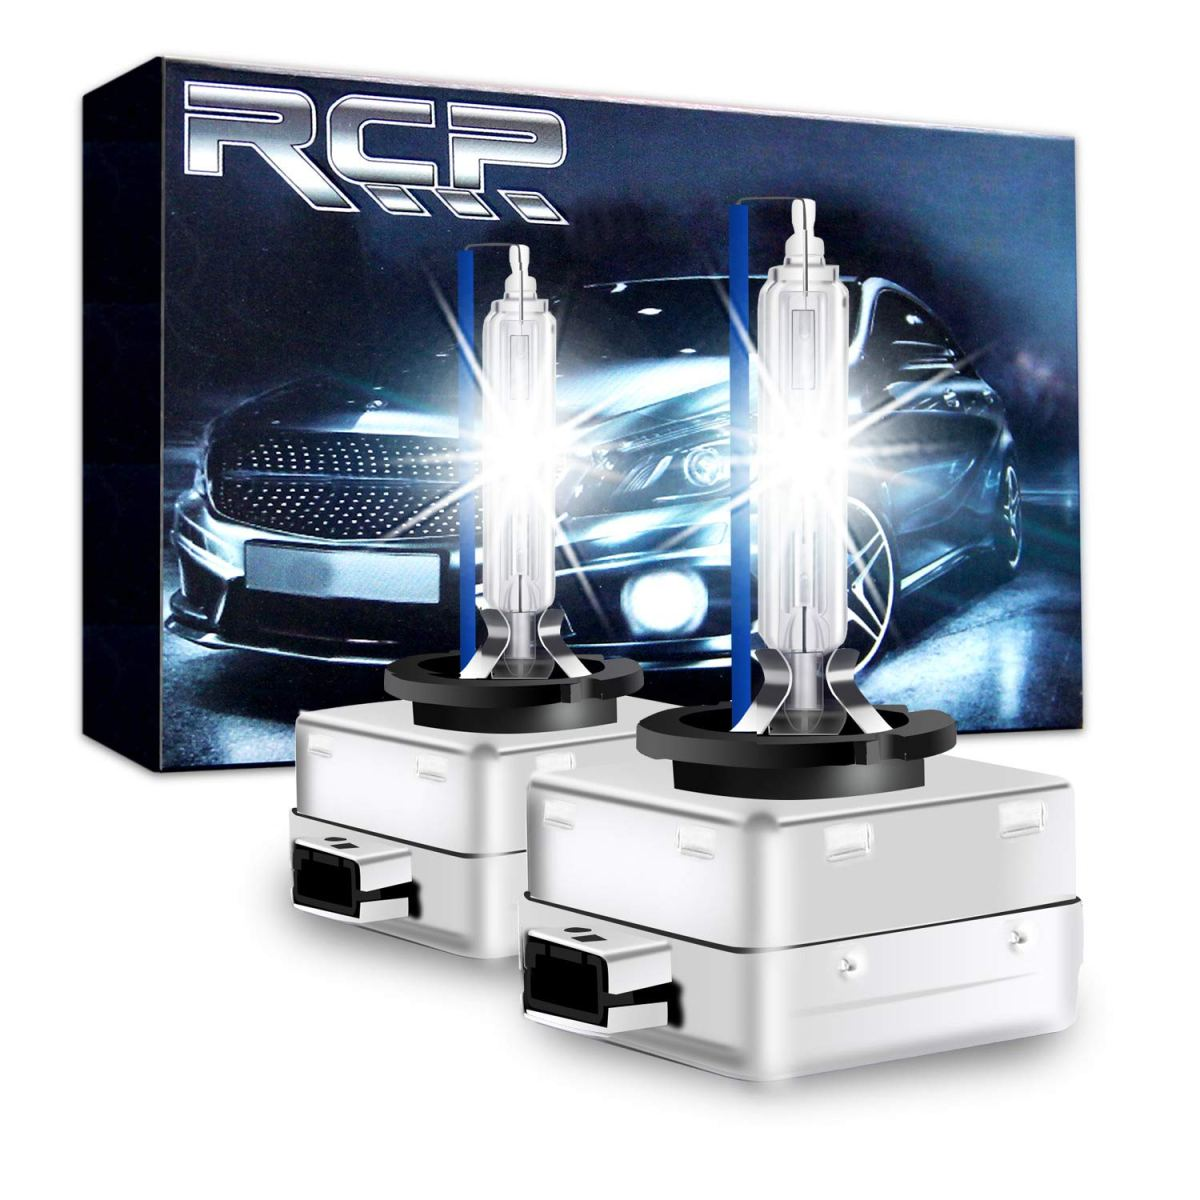 Best HID Headlight Kits RCP - D3S8 - (A Pair) D3S/ D3R 8000K Xenon HID Replacement Bulb Ice Blue Metal Stents Base 12V Car Headlight Lamps Head Lights 35W